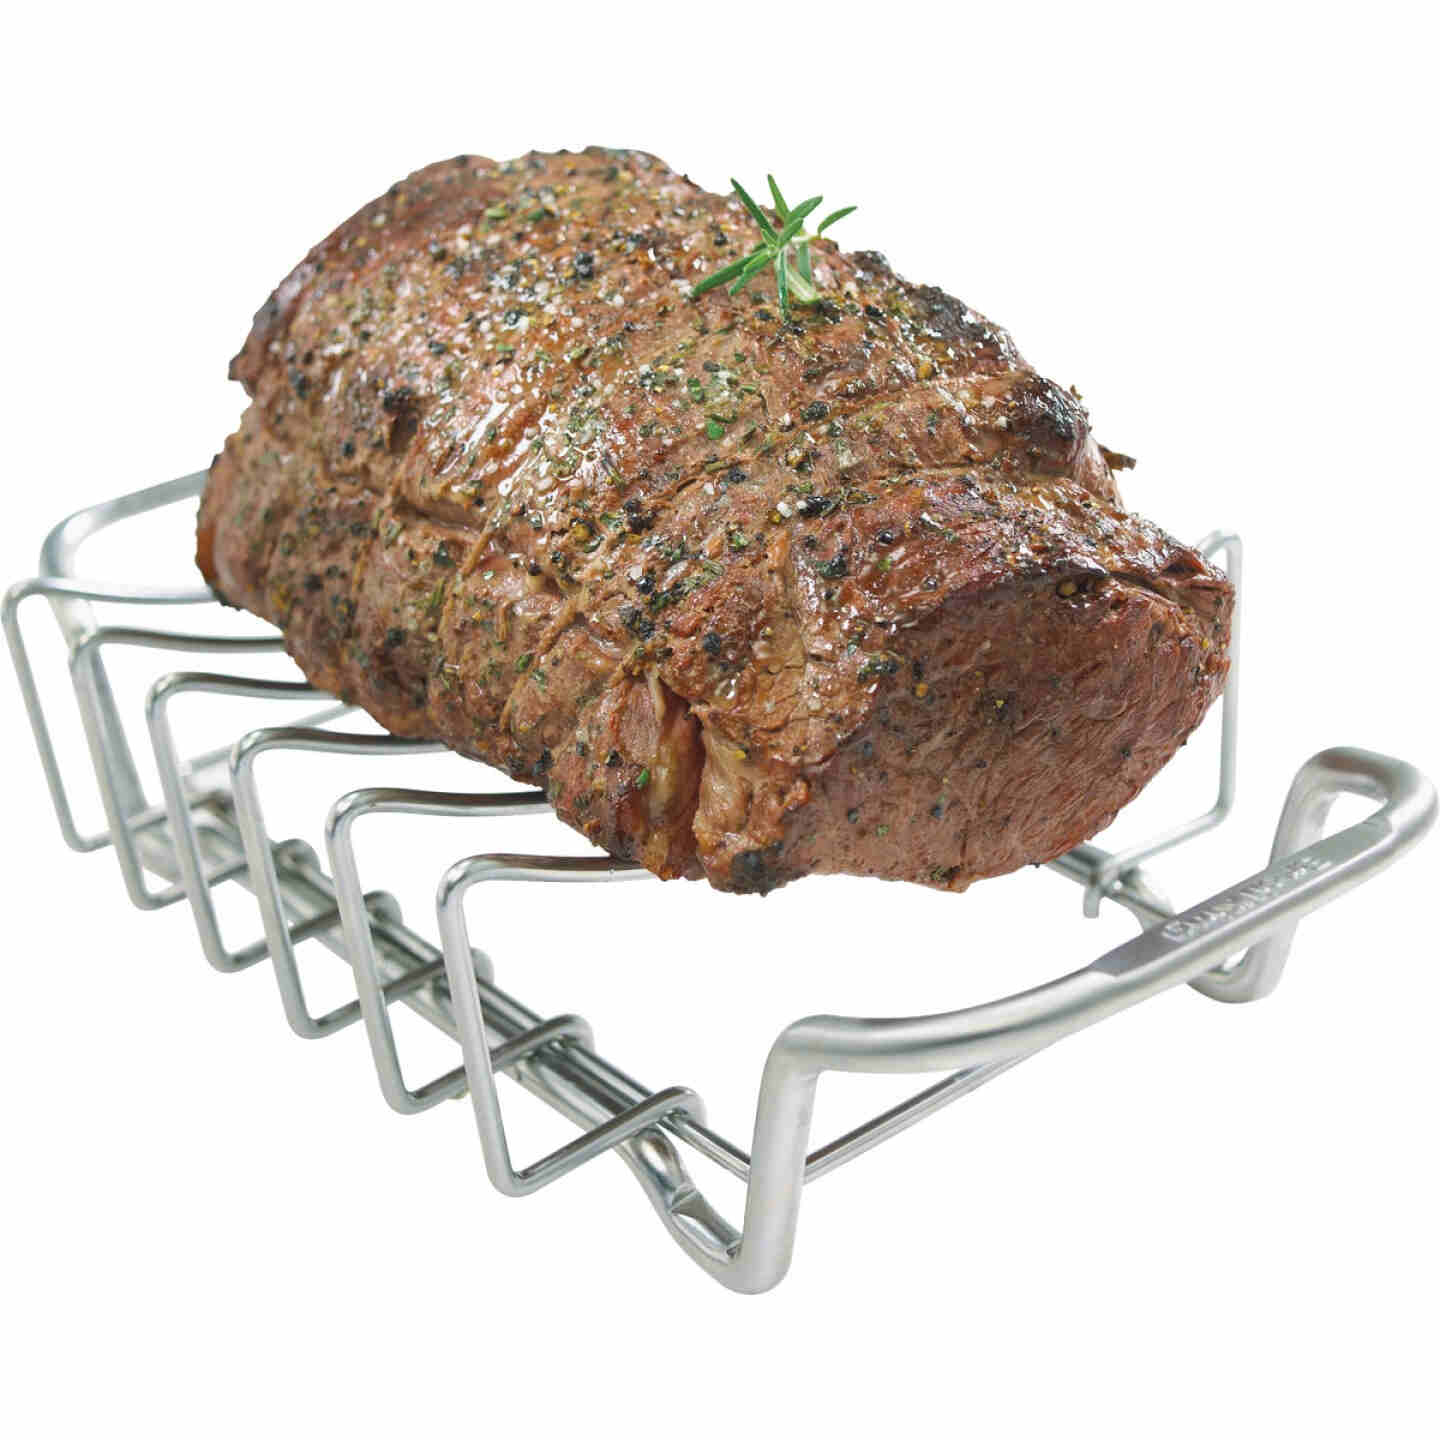 Broil King Imperial Series Stainless Steel Rib & Roast Grill Rack Image 3